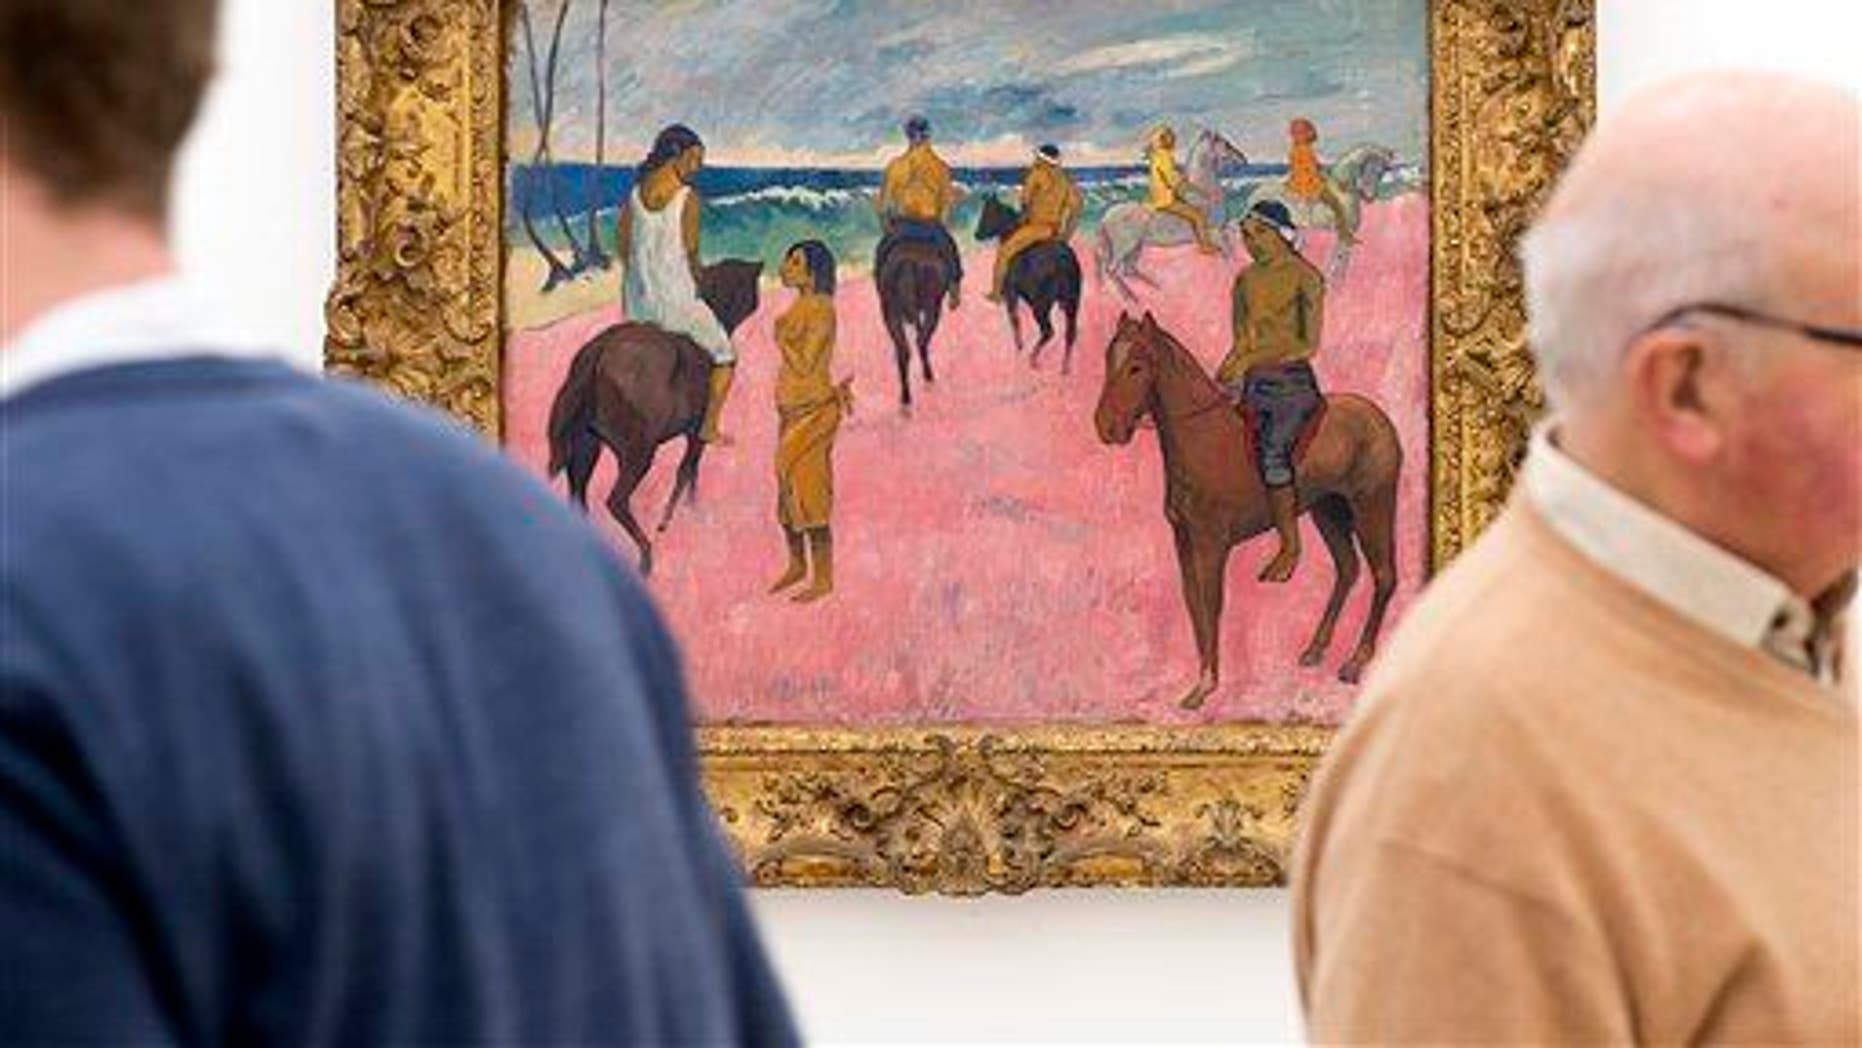 """Two men stand next to """"Cavaliers sur la plage"""" (Riders on the beach, 1902) by French painter Paul Gauguin at an exhibition  in the Fondation Beyeler in Riehen, Switzerland, on Friday, Feb.  6, 2015."""